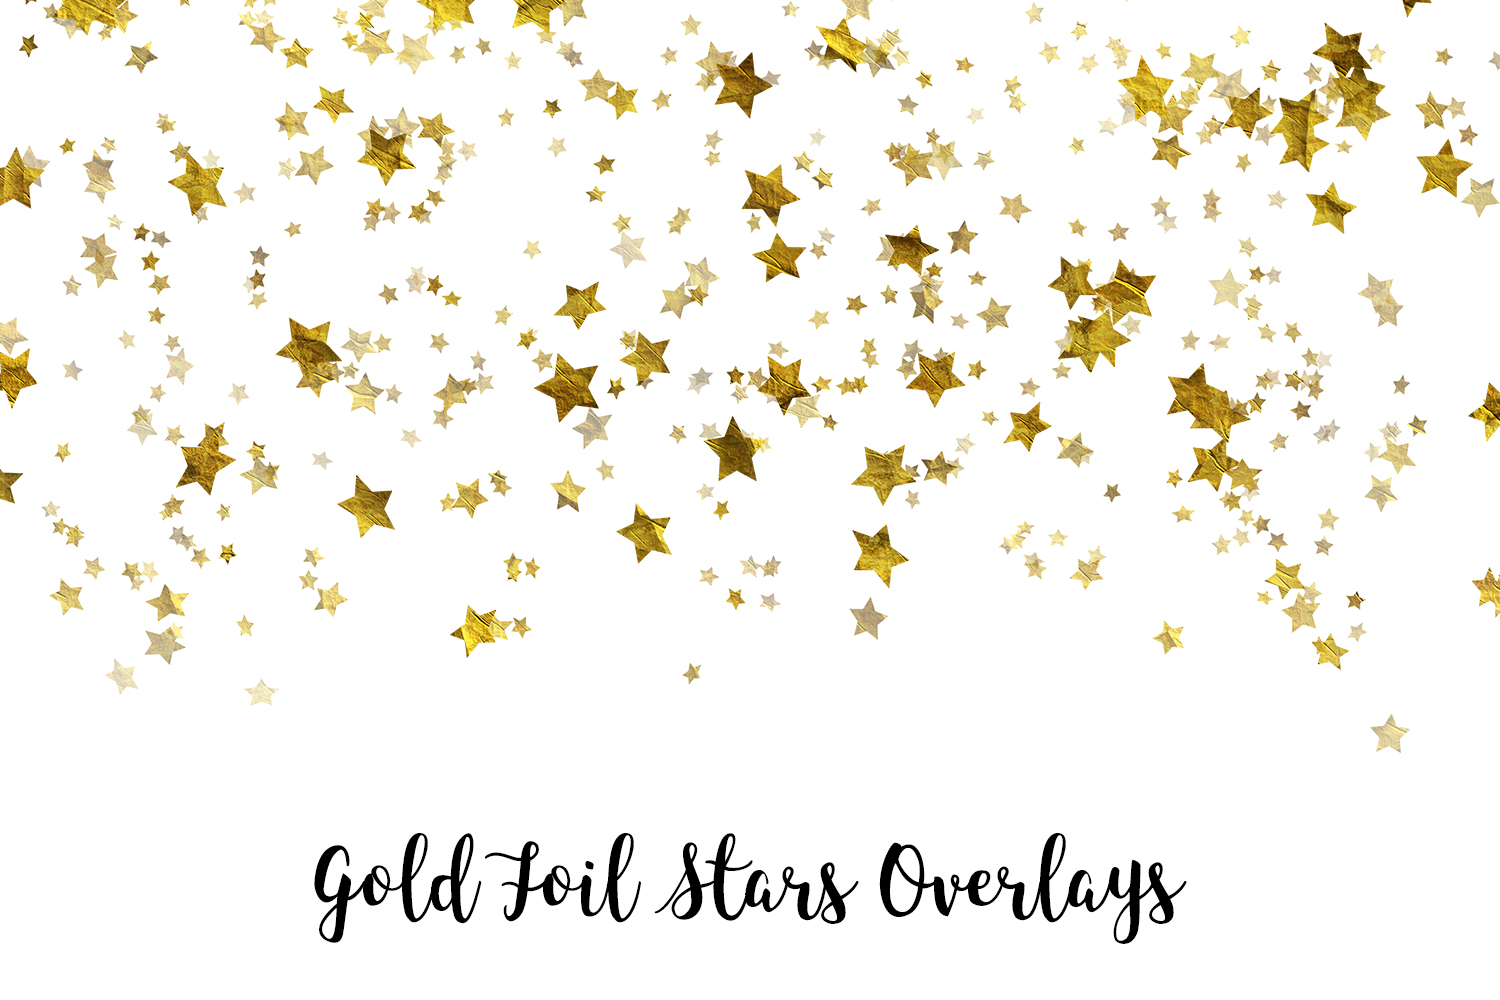 Gold Foil Stars Overlays, Gold Stars Confetti example image 1